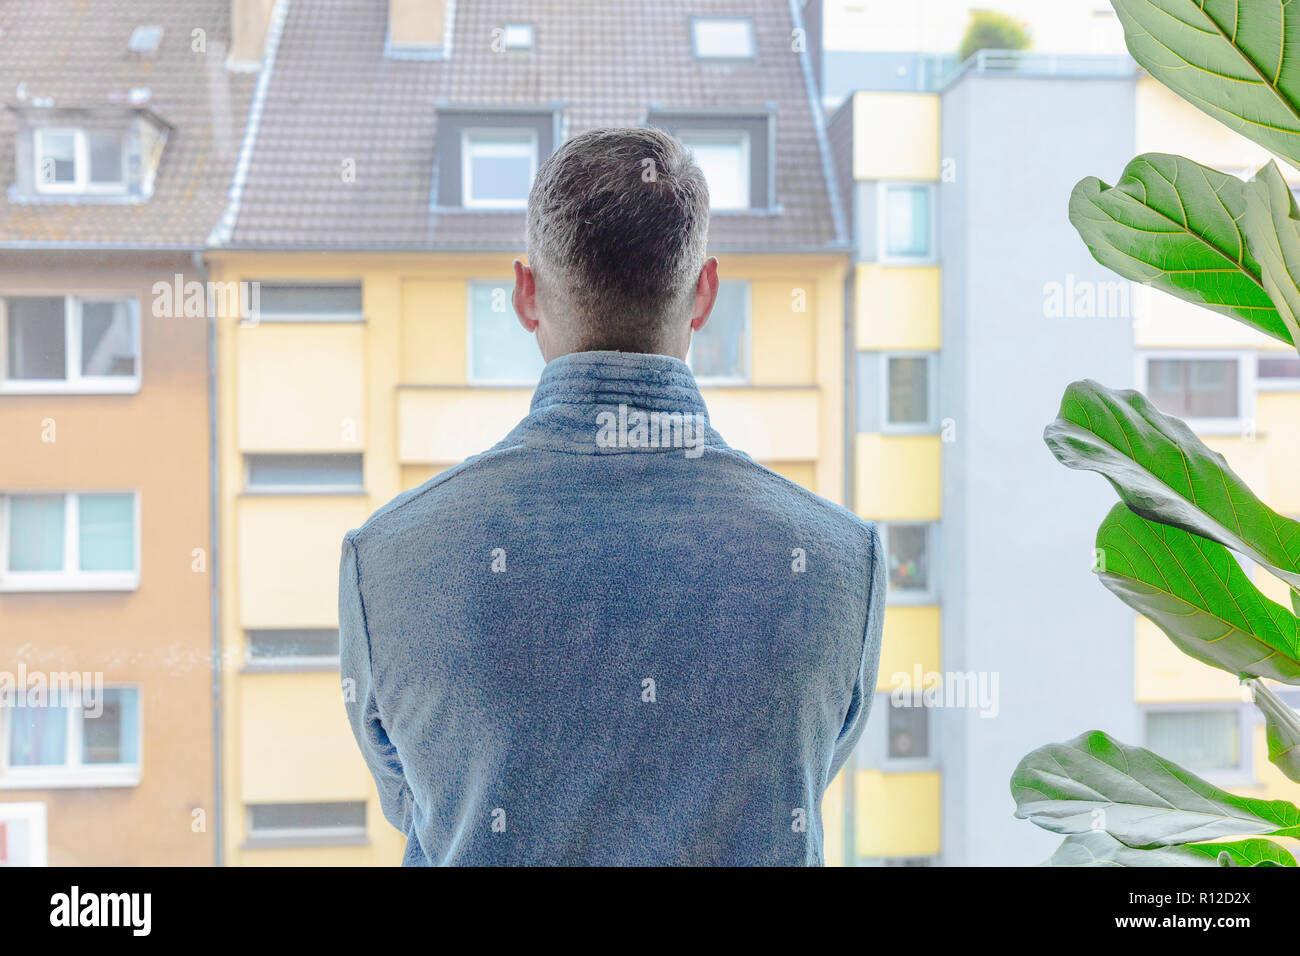 Man looking out of window at apartment block - Stock Image